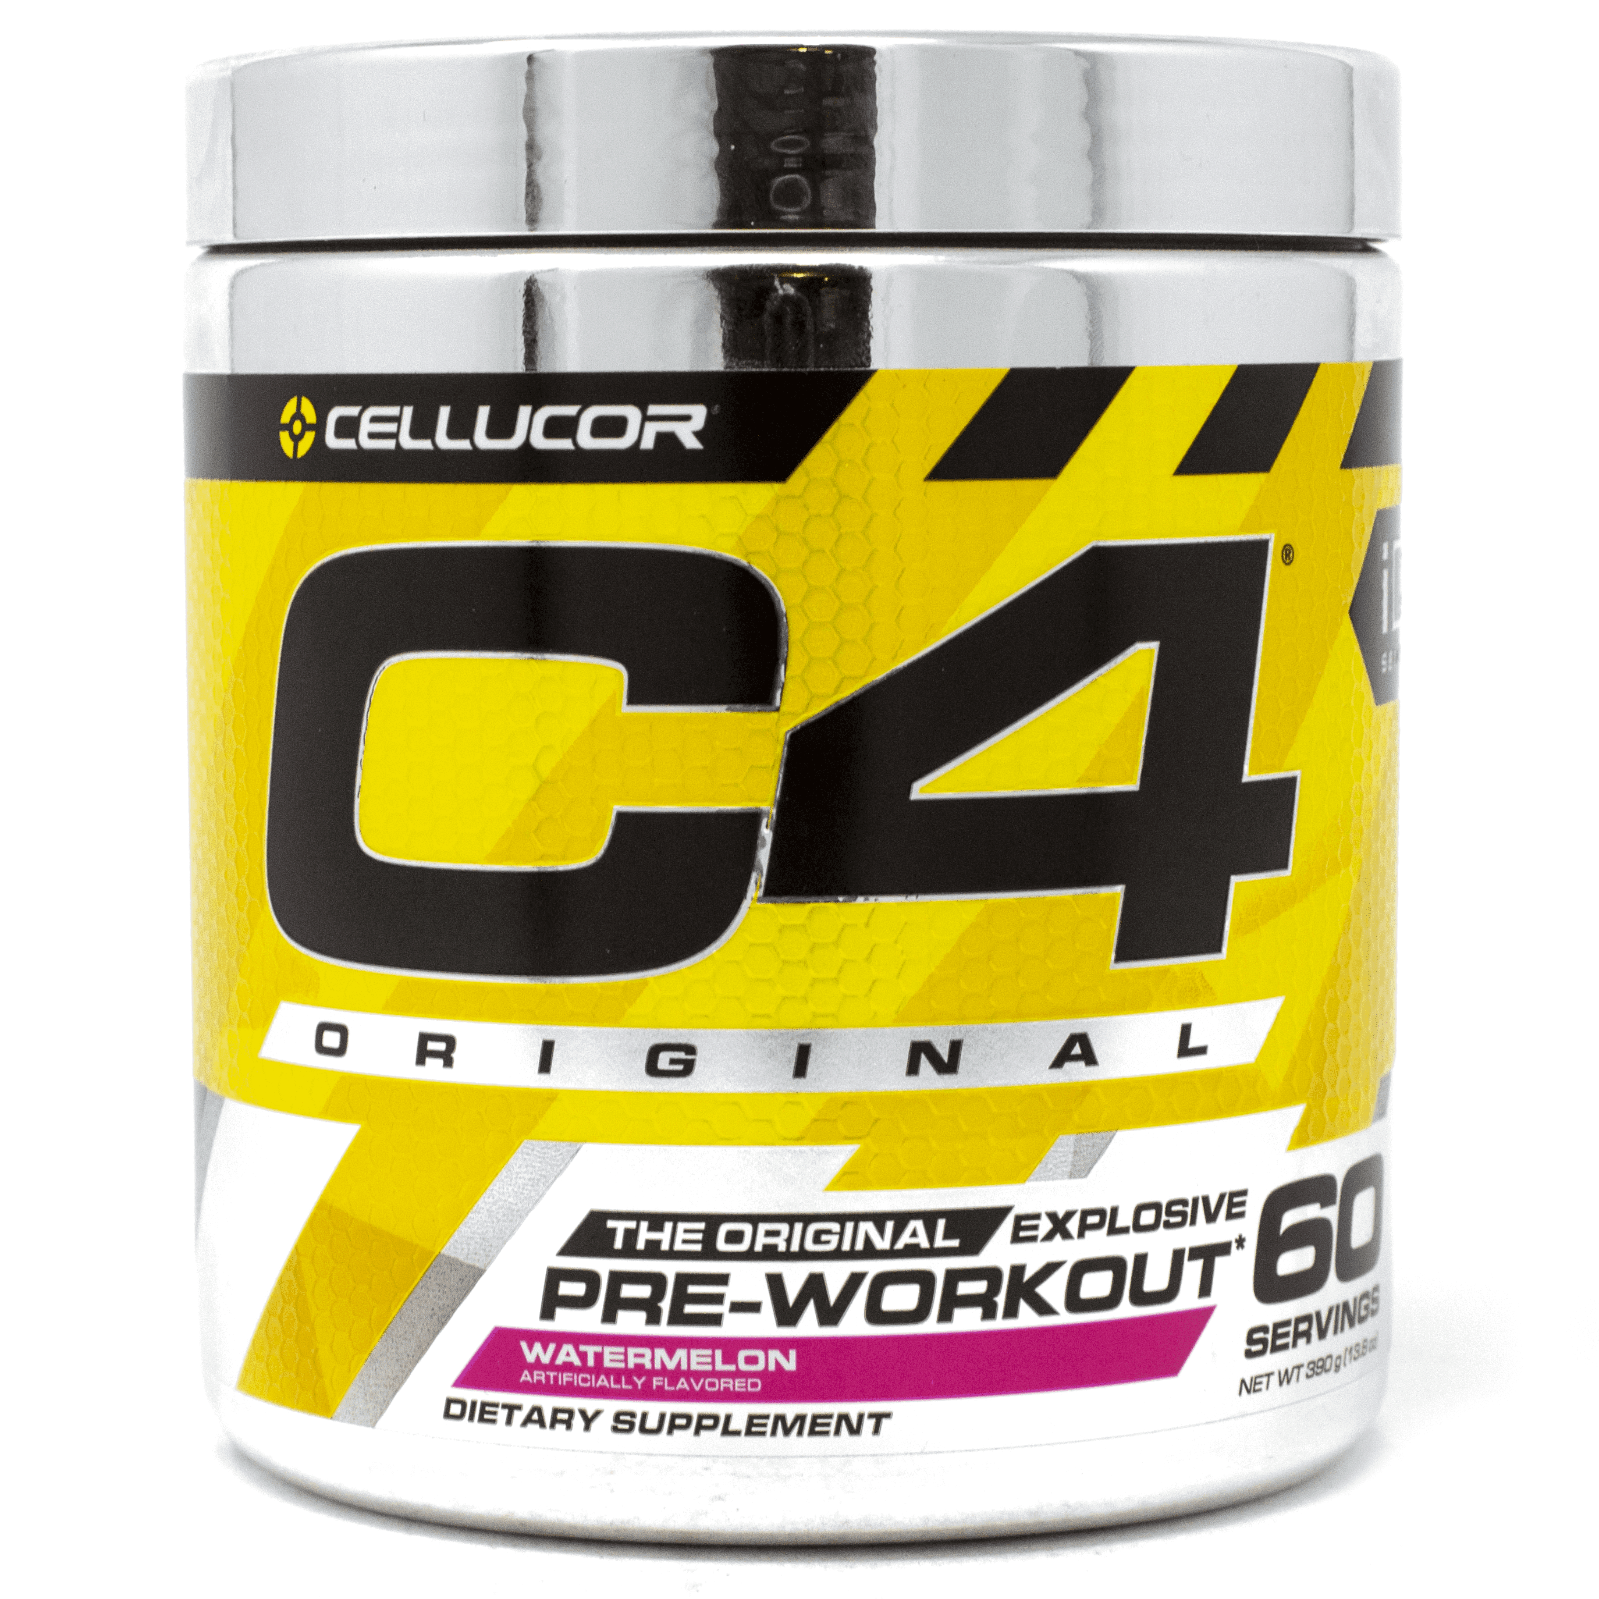 Cellucor C4 Original iD Series 60 Servings Pre-Workout Water